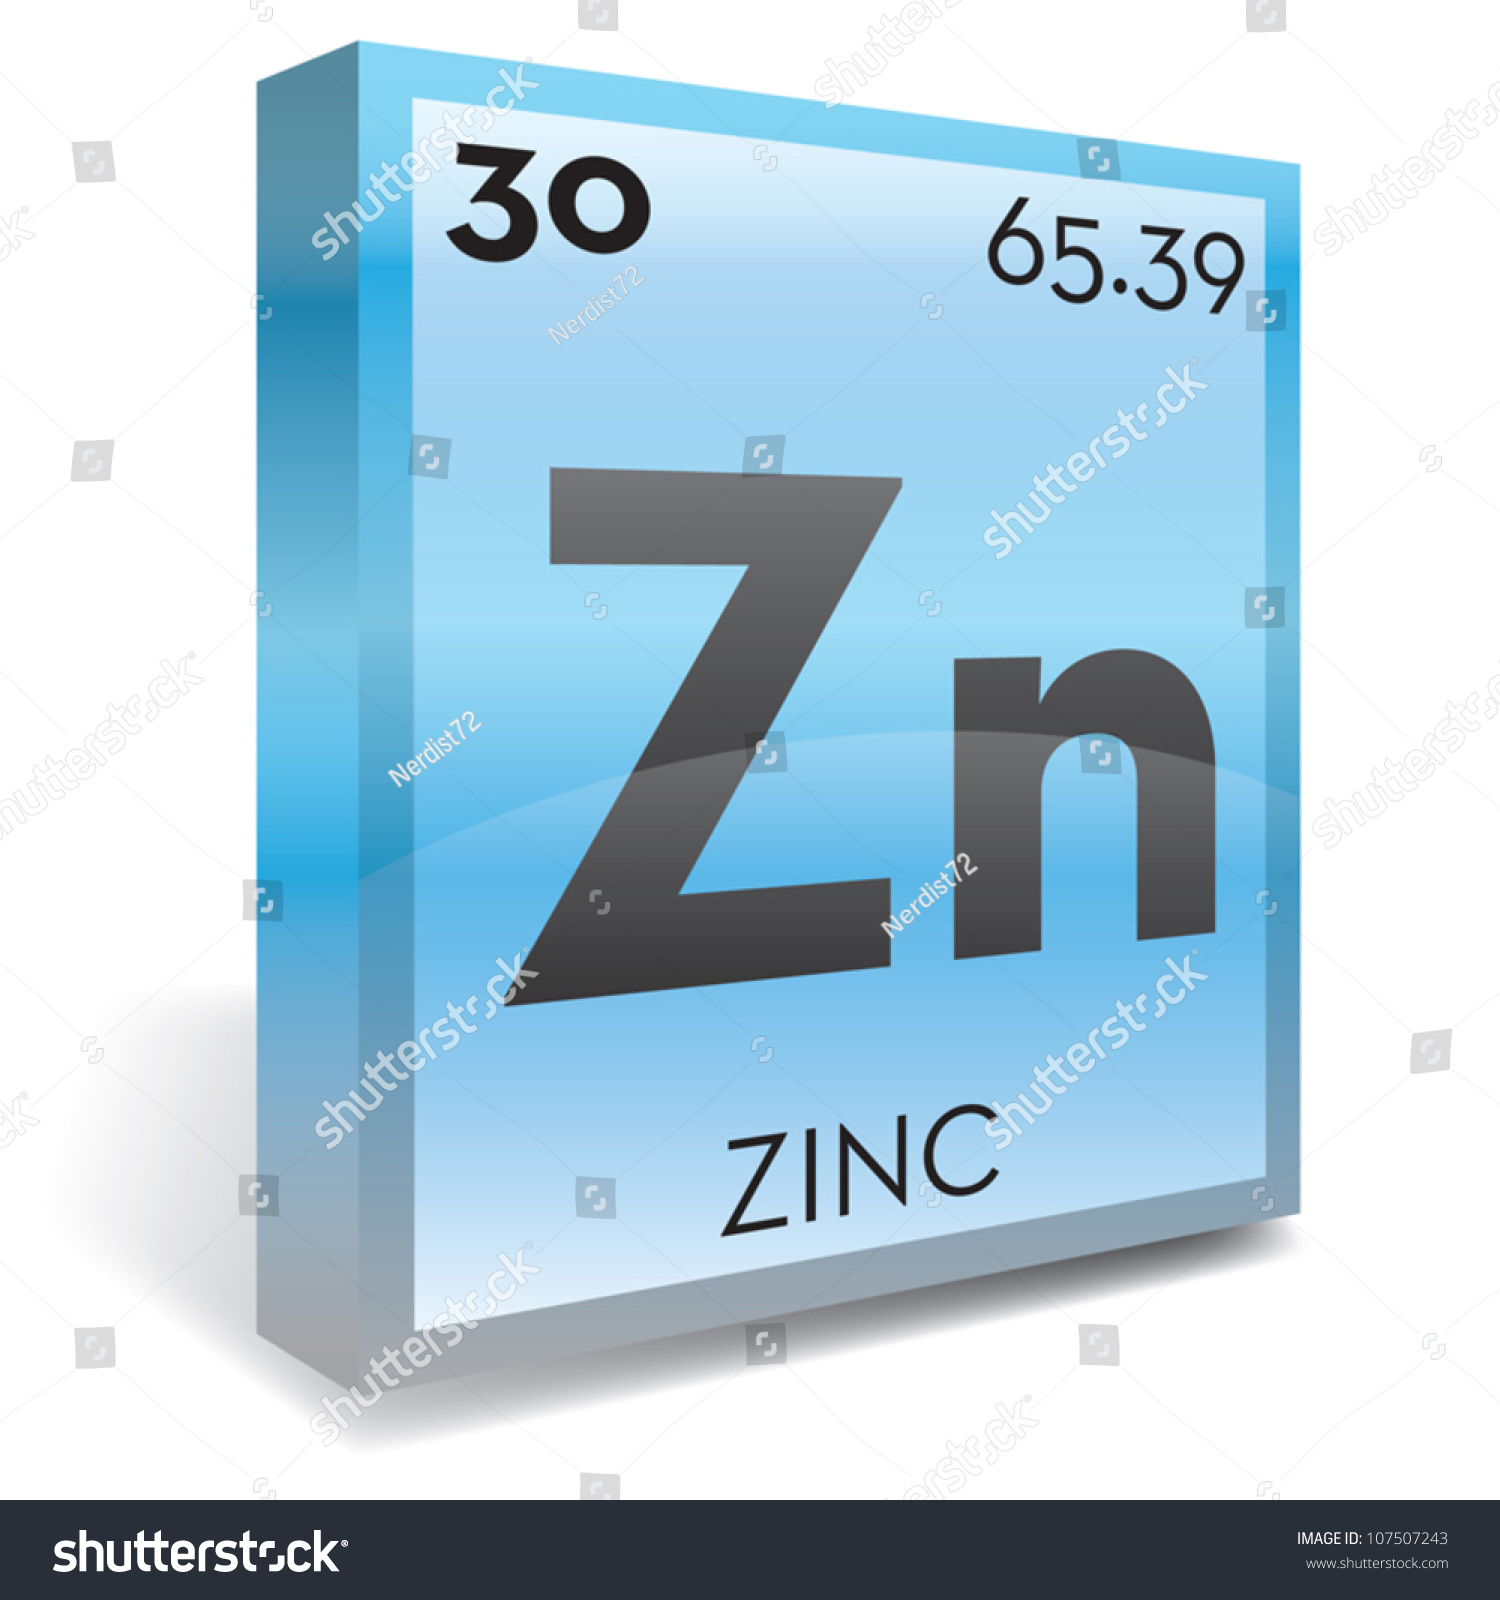 Zinc element periodic table stock vector 107507243 shutterstock zinc element periodic table gamestrikefo Image collections